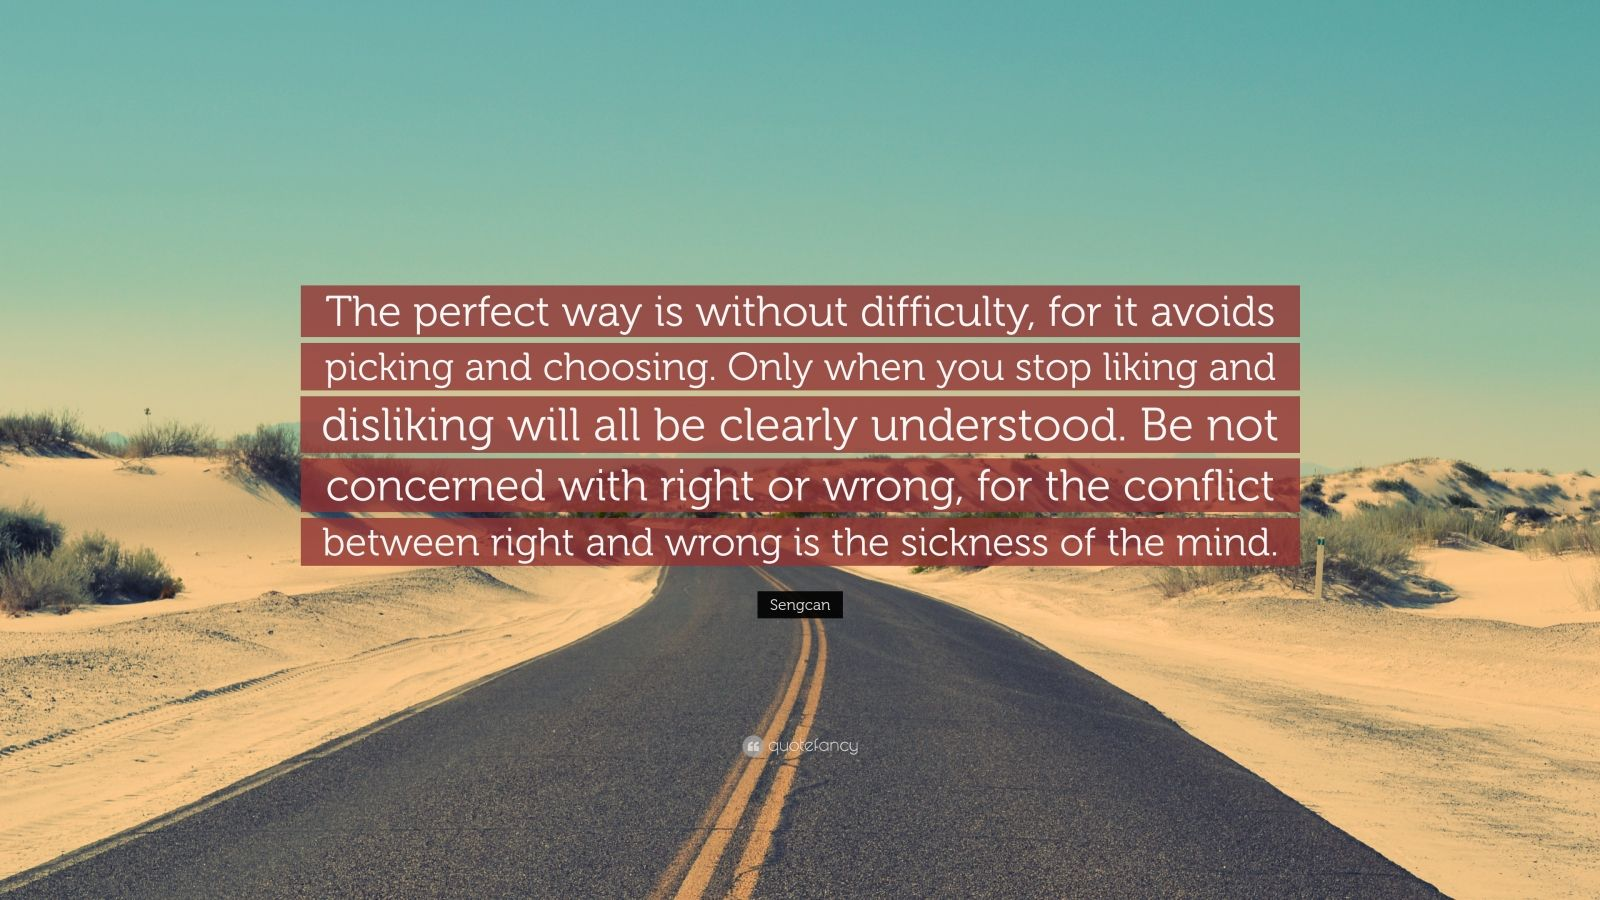 """Sengcan Quote: """"The perfect way is without difficulty, for it avoids picking and choosing. Only when you stop liking and disliking will all be clearly understood. Be not concerned with right or wrong, for the conflict between right and wrong is the sickness of the mind."""""""